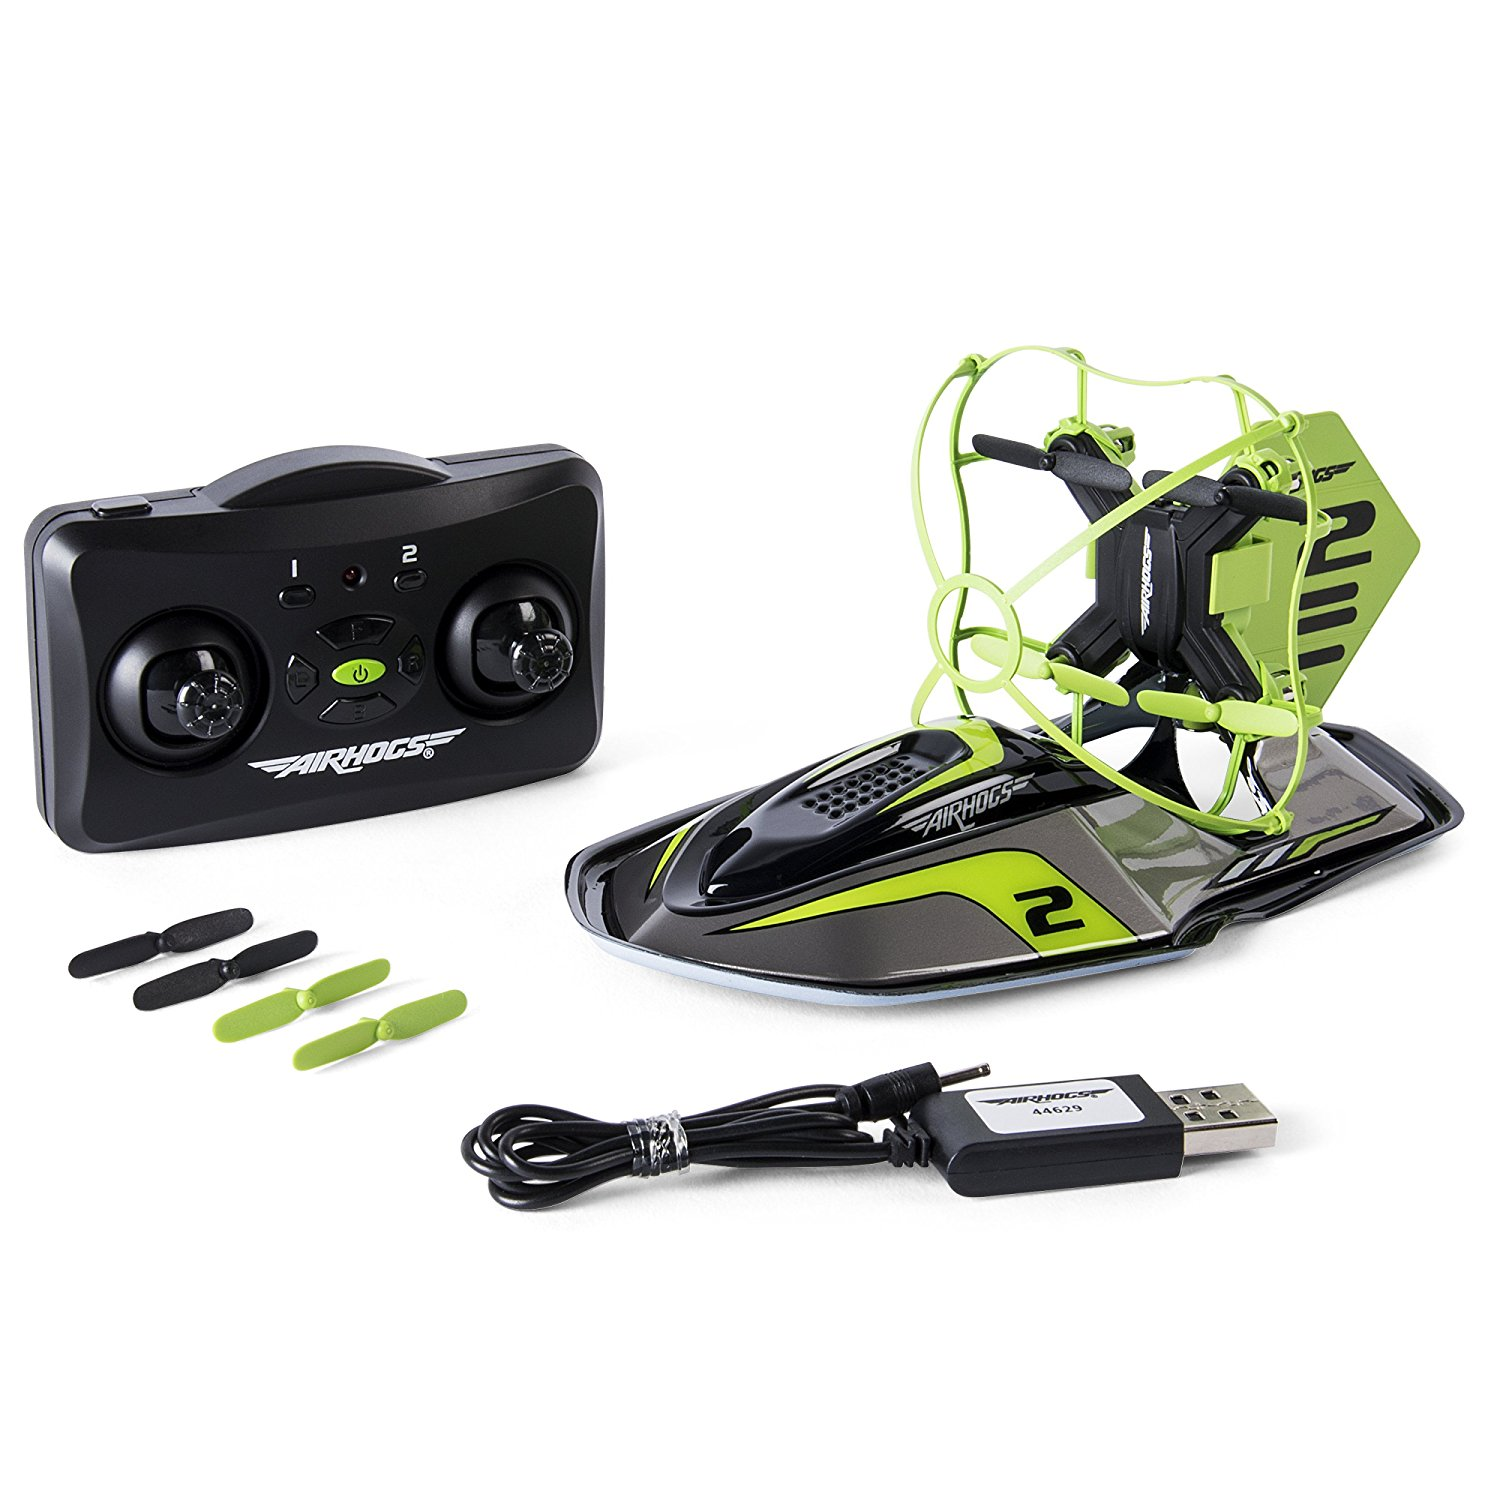 Refurbished Spin Master 20093871 Air Hogs 2-in-1 Hyper Drift Drone Green by SPIN MASTER